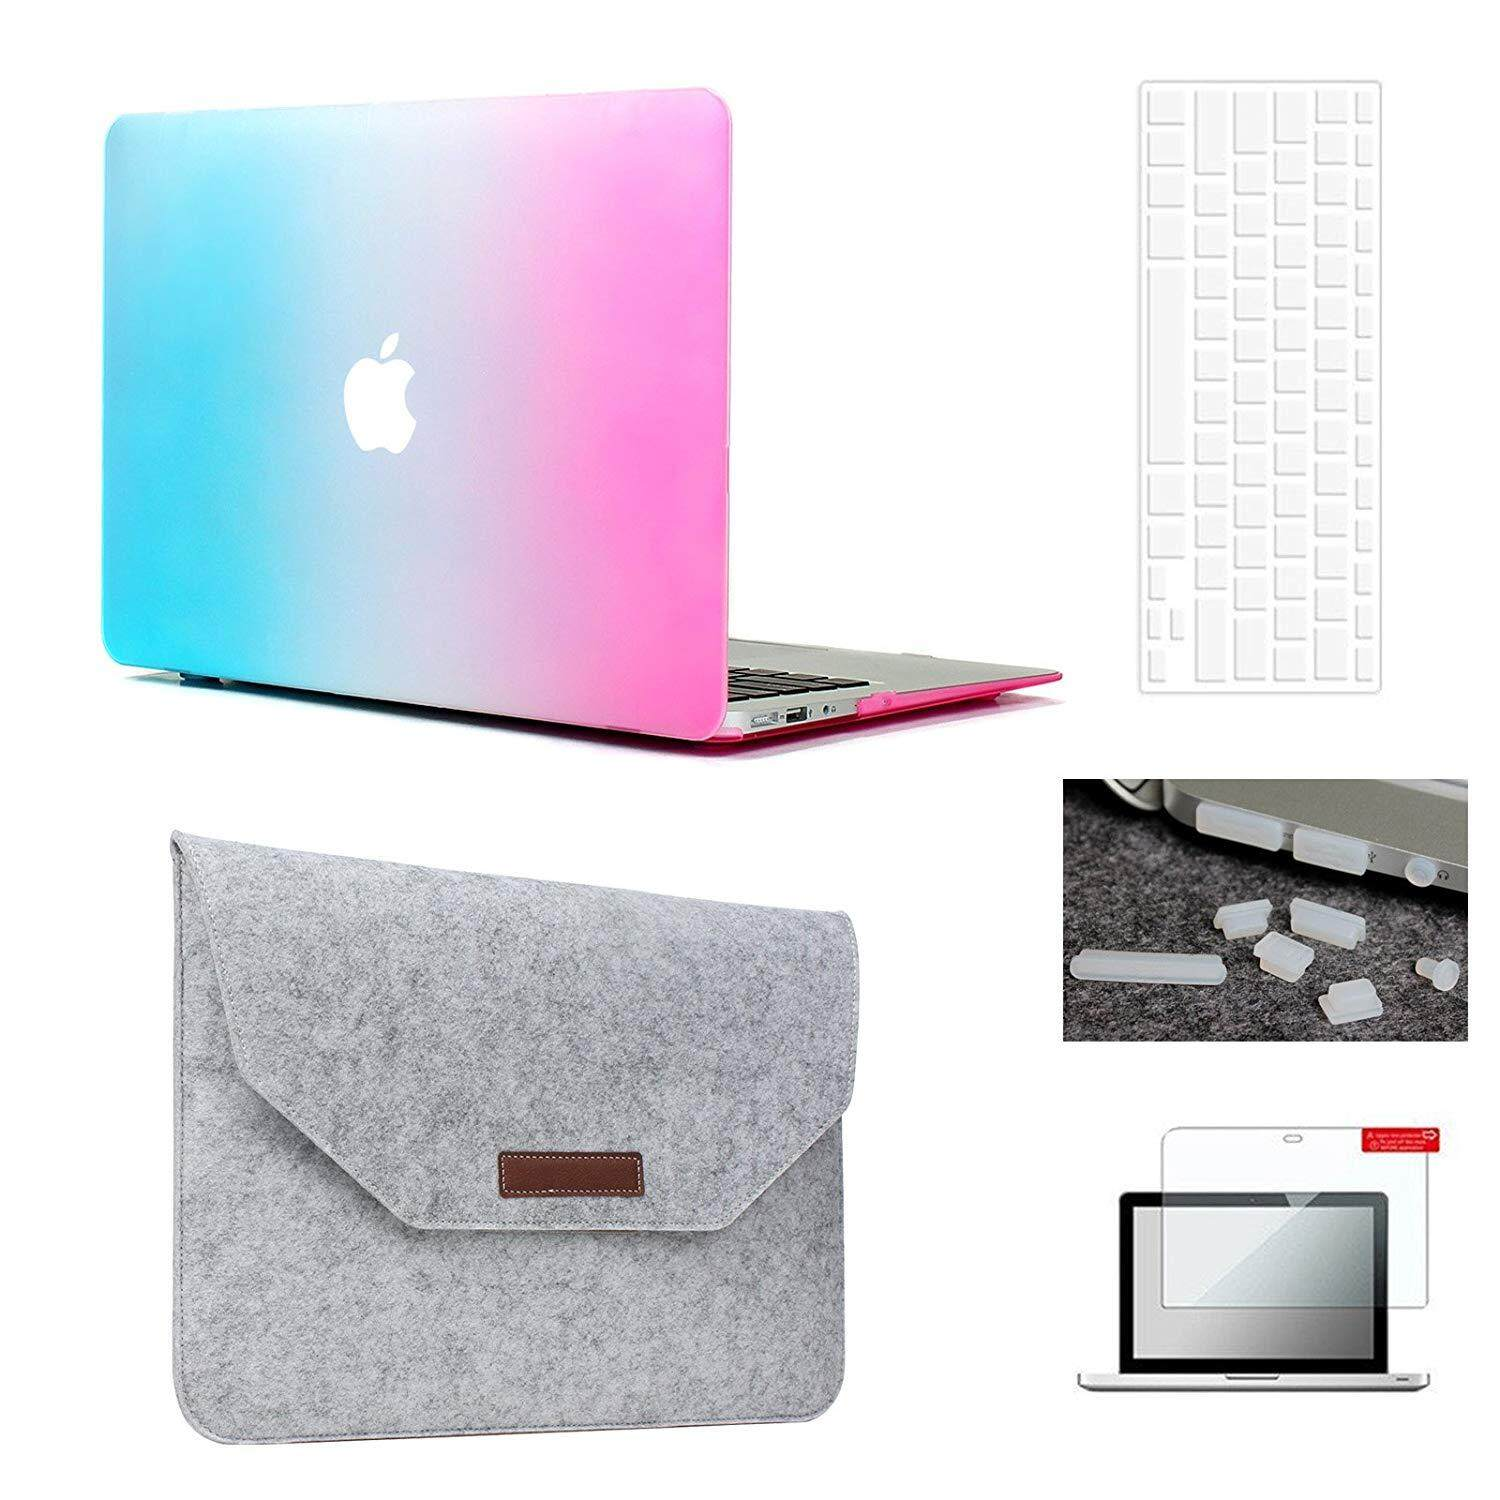 MacBook Air 13 Case & Sleeve[5 in 1 Bundle], Plastic Hardshell Case Bundle with Felt Sleeve, Screen Protector, Keyboard Cover & Dust Plug for MacBook Air 13-inch A1369/A1466(Release 2018/ 2017/ 2016 / 2015 / 2014 / 2013 / 2012 (NEWEST VERSION))